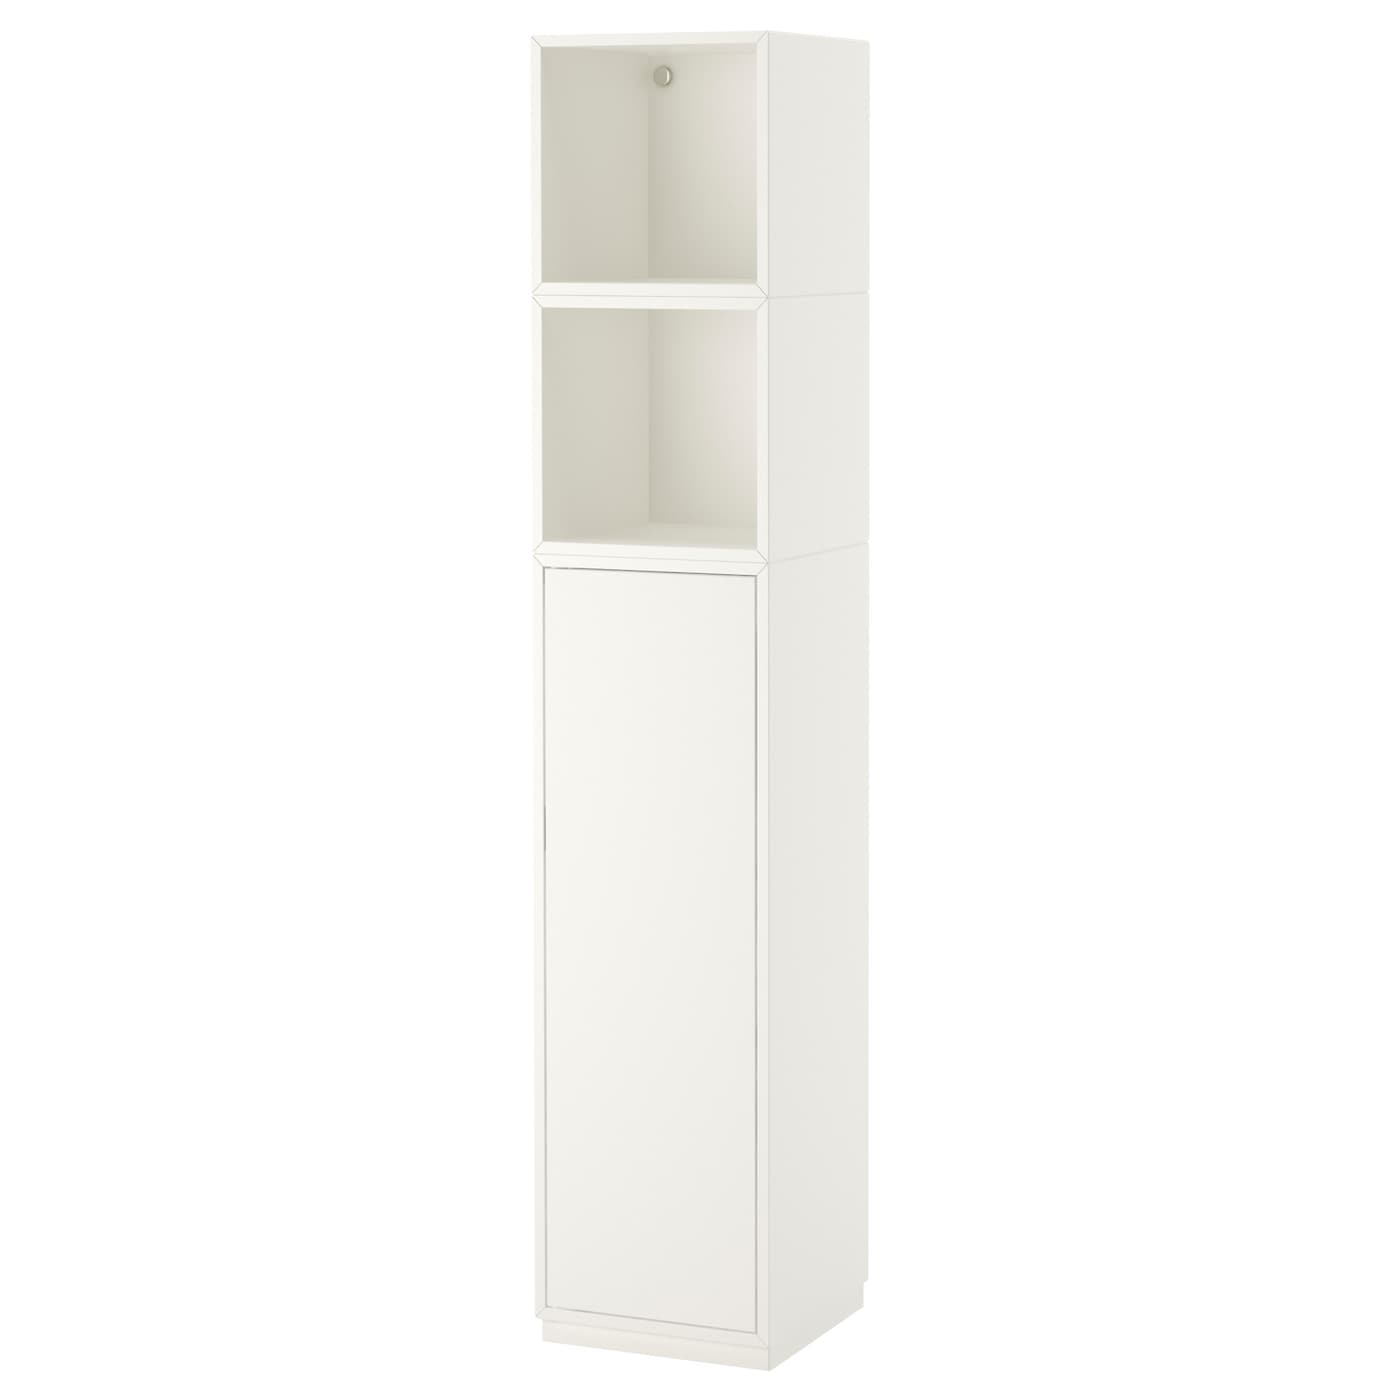 IKEA EKET cabinet combination with plinth